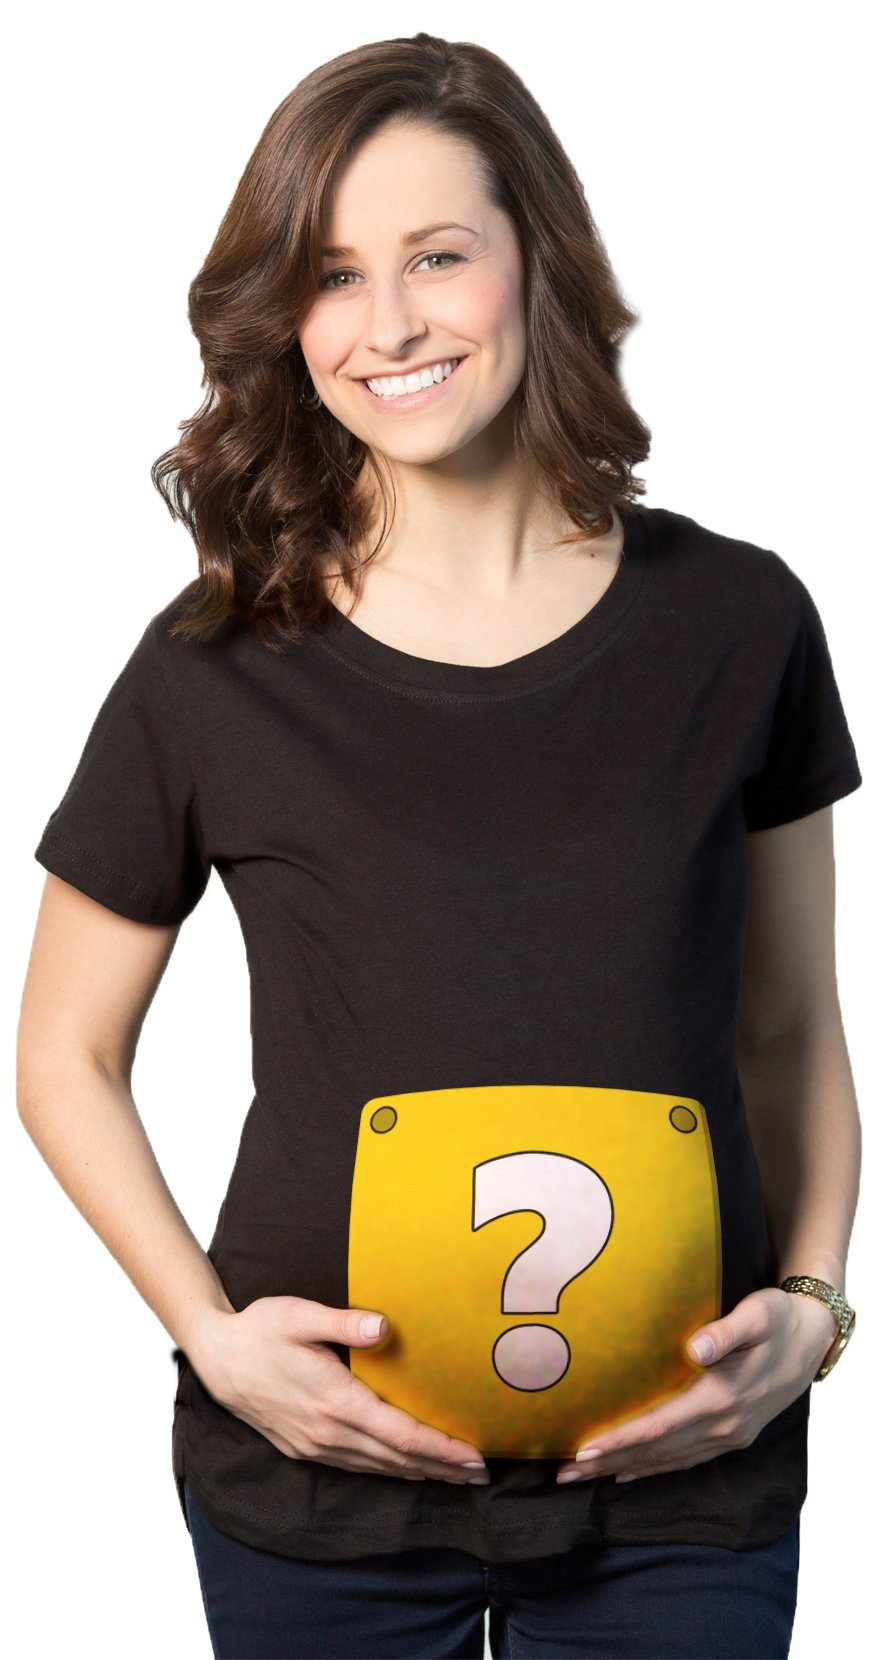 Maternity Question Mark Block T Shirt Nerdy Video Game Pregnancy Tee for Ladies (Black) L